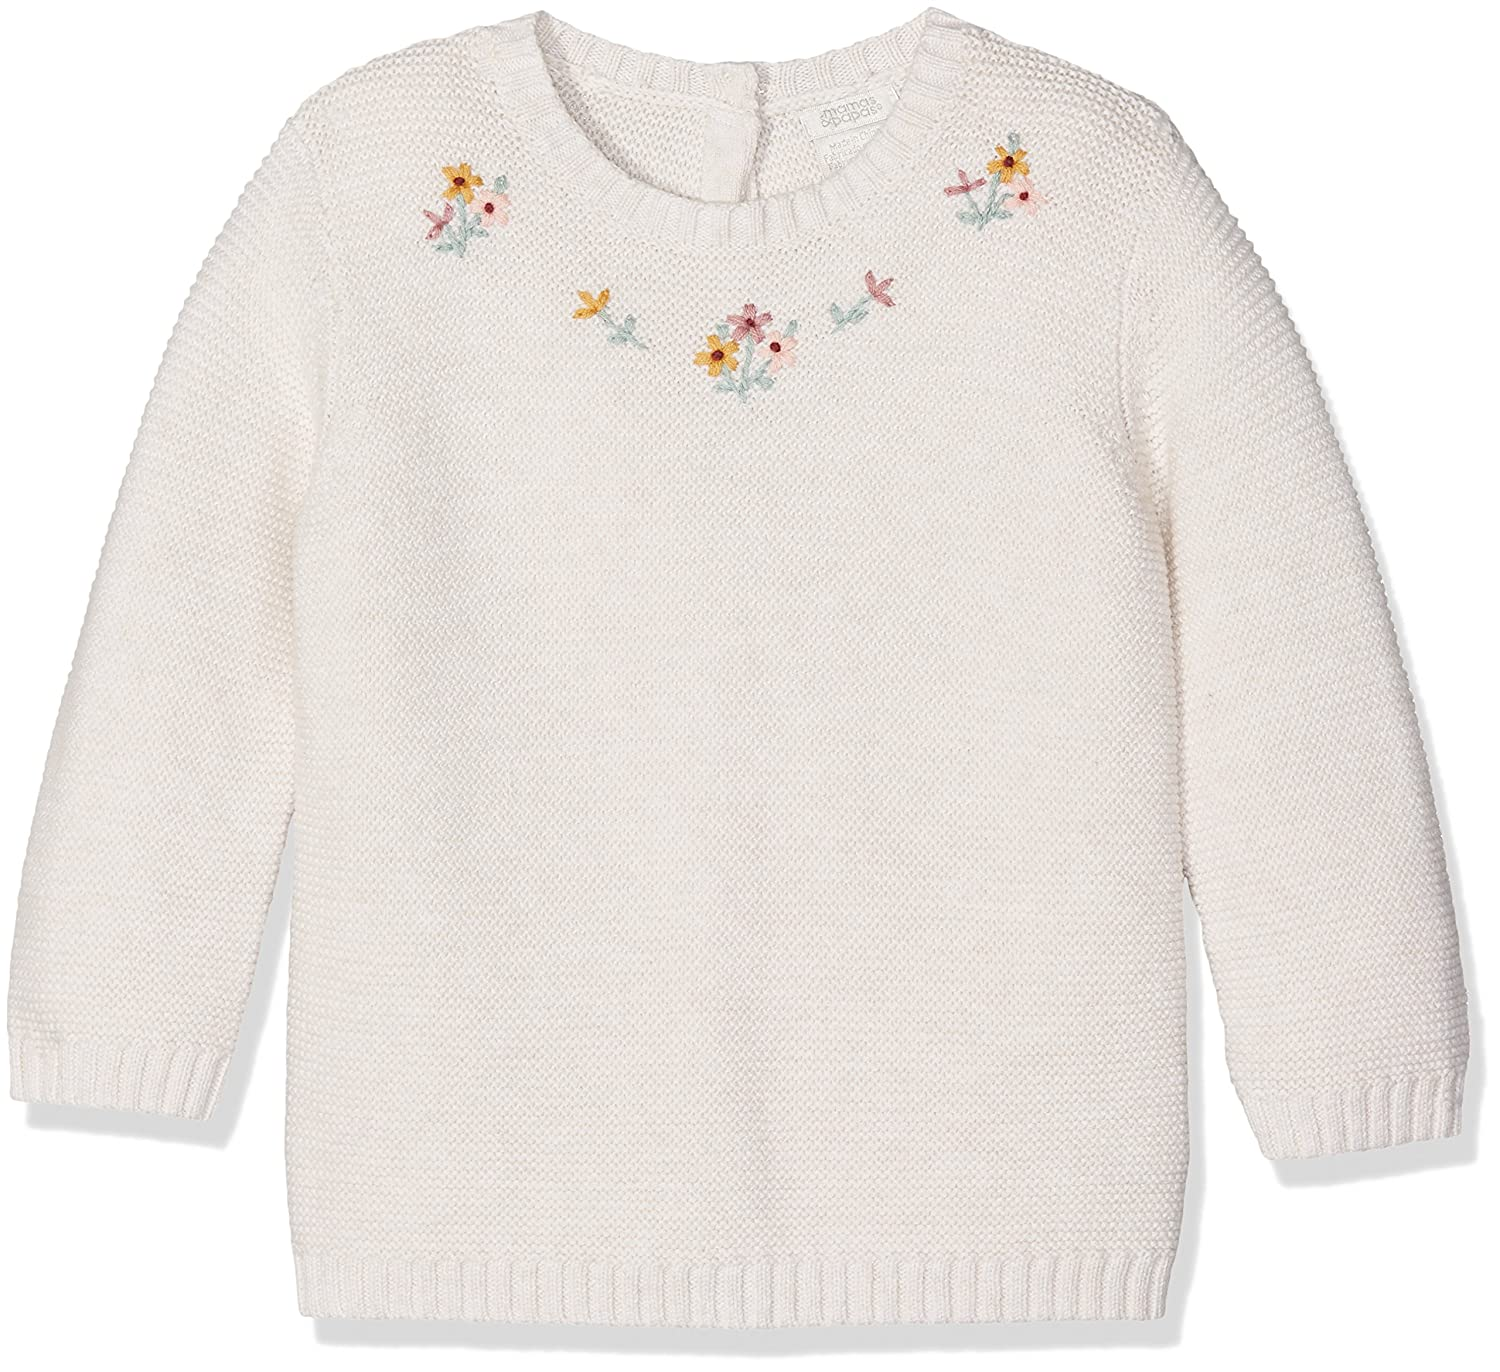 Baby Girls' Clothing (0-24 Months) Mamas And Papas Baby Girl Jumper